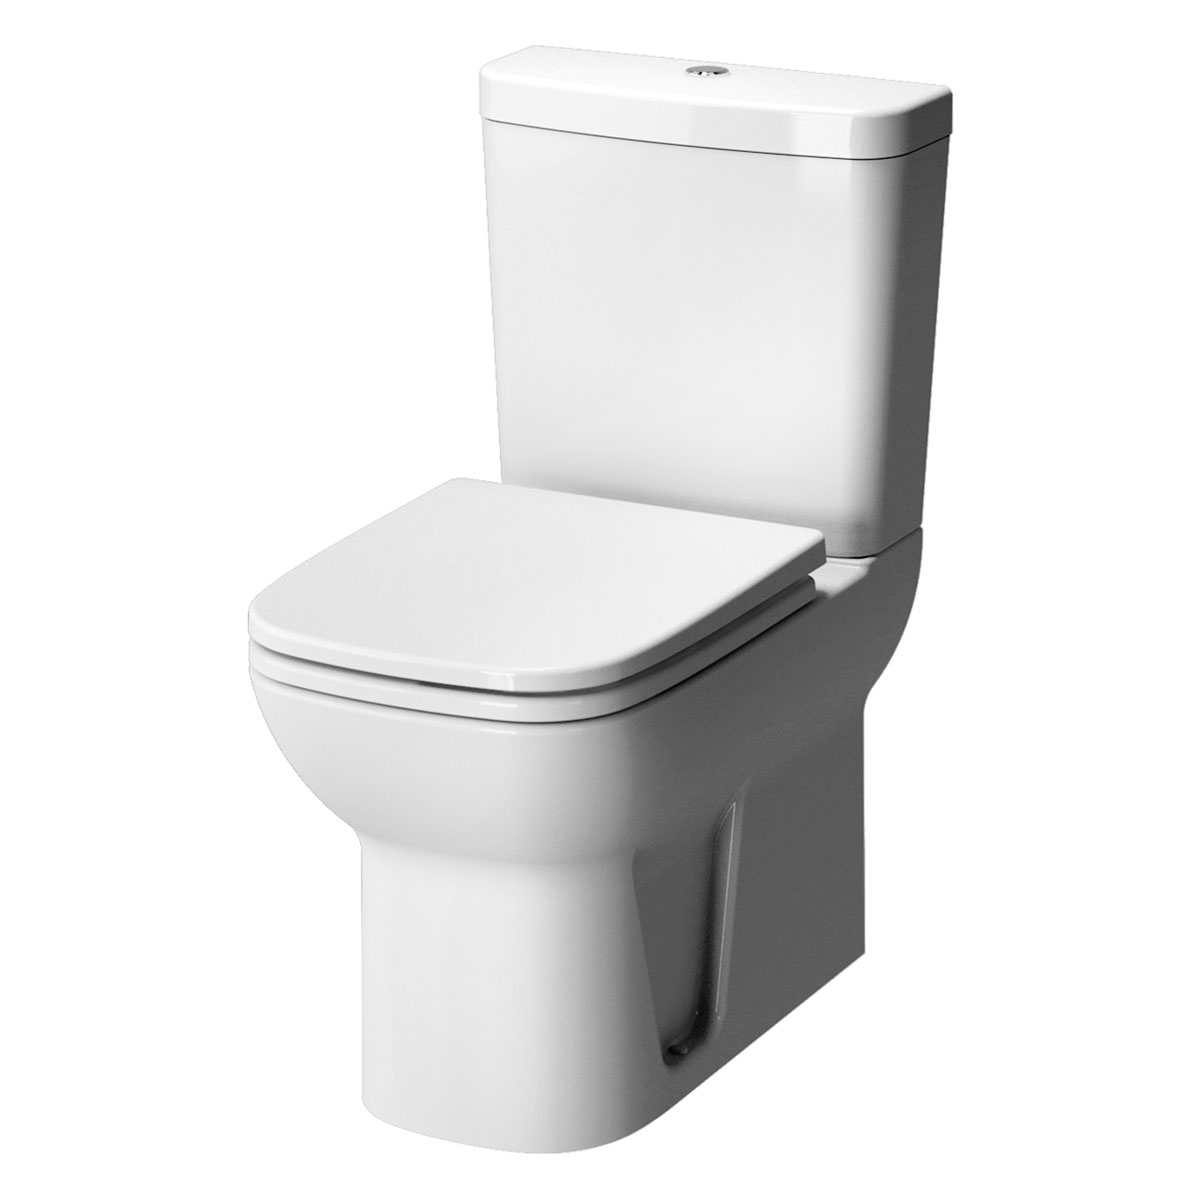 VitrA S20 Cloakroom Suite Toilet and 450mm 1 Tap Hole Basin - Soft Close Seat-0